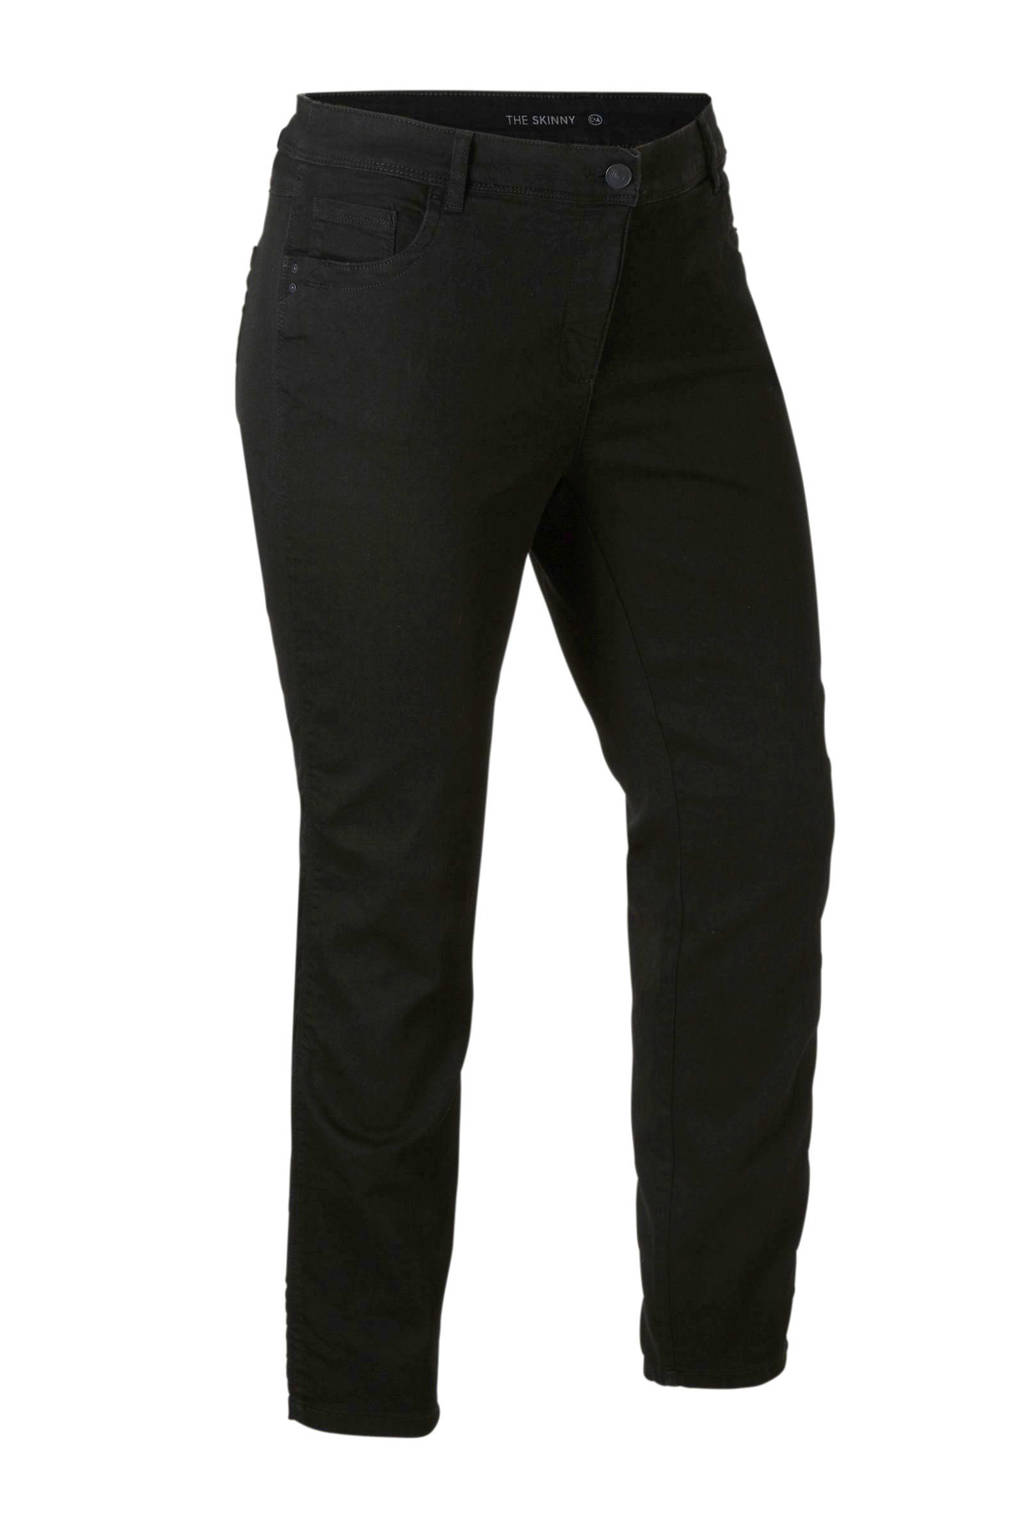 C&A XL Yessica skinny fit jeans, Zwart